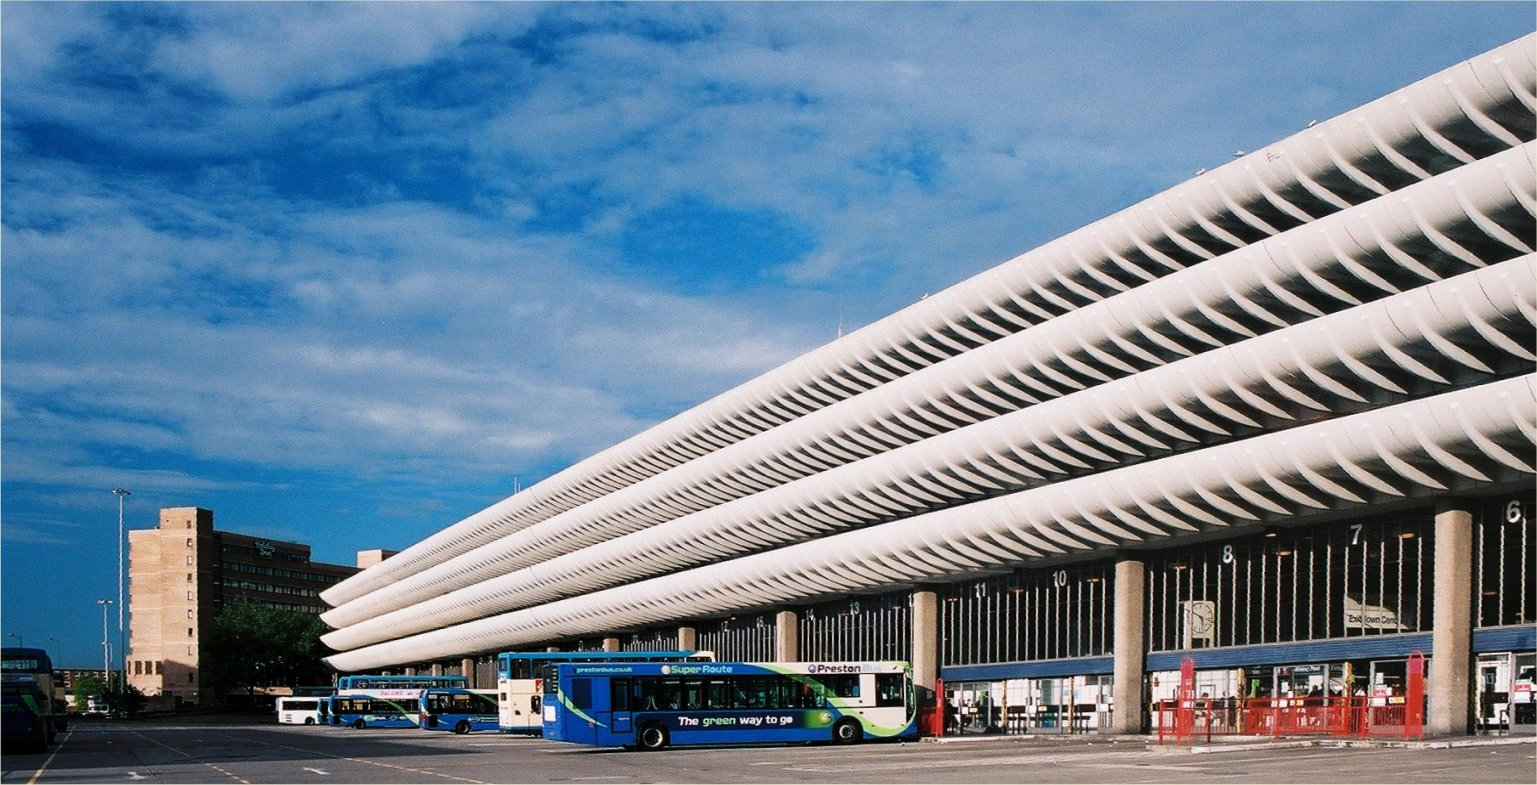 Preston Bus Station (1968-1969). Built by Ove Arup and Partners with a design by Keith Ingham and Charles Wilson.Saved with the help of C20.